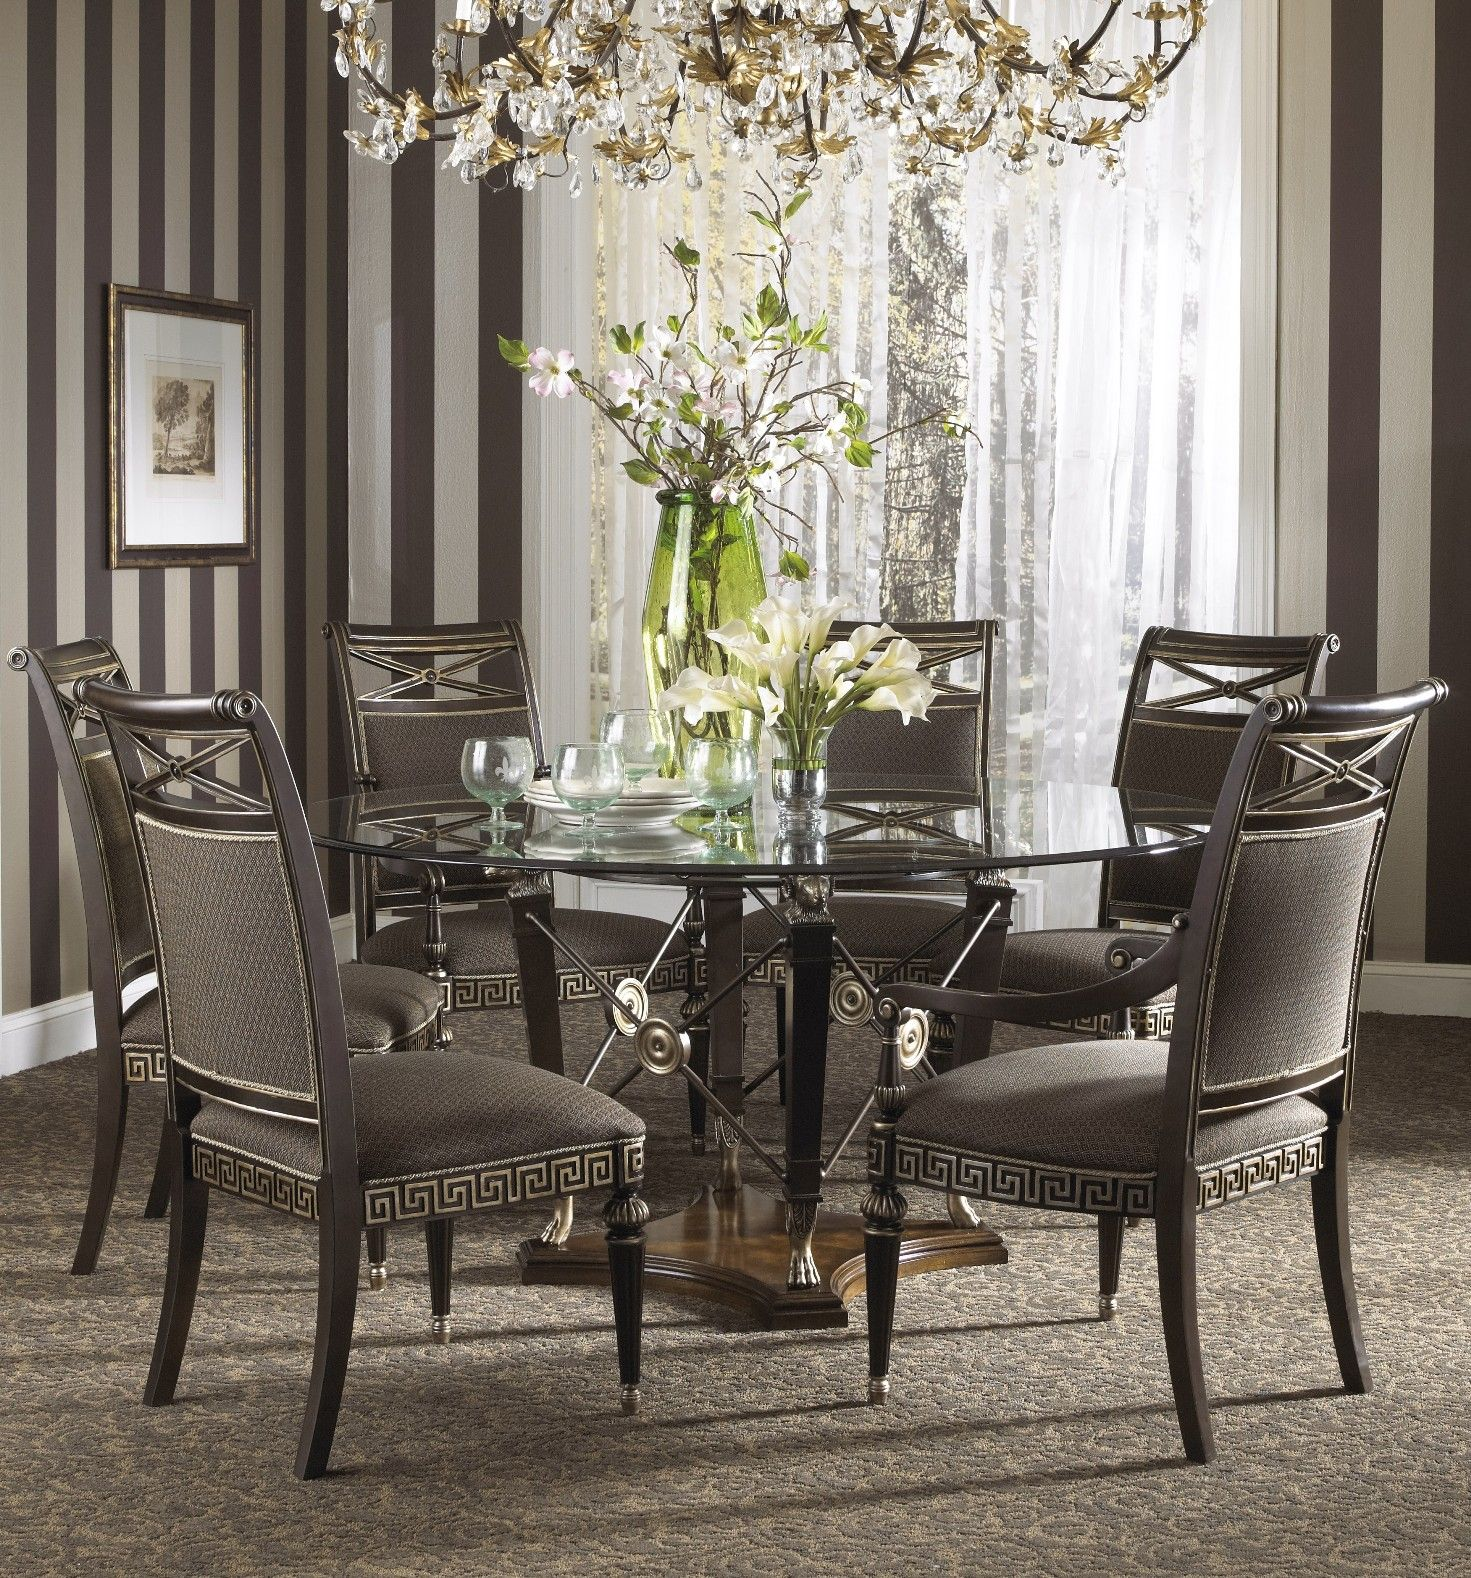 15 Small Dining Room Table Ideas Tips: Buying Dining Room Furniture